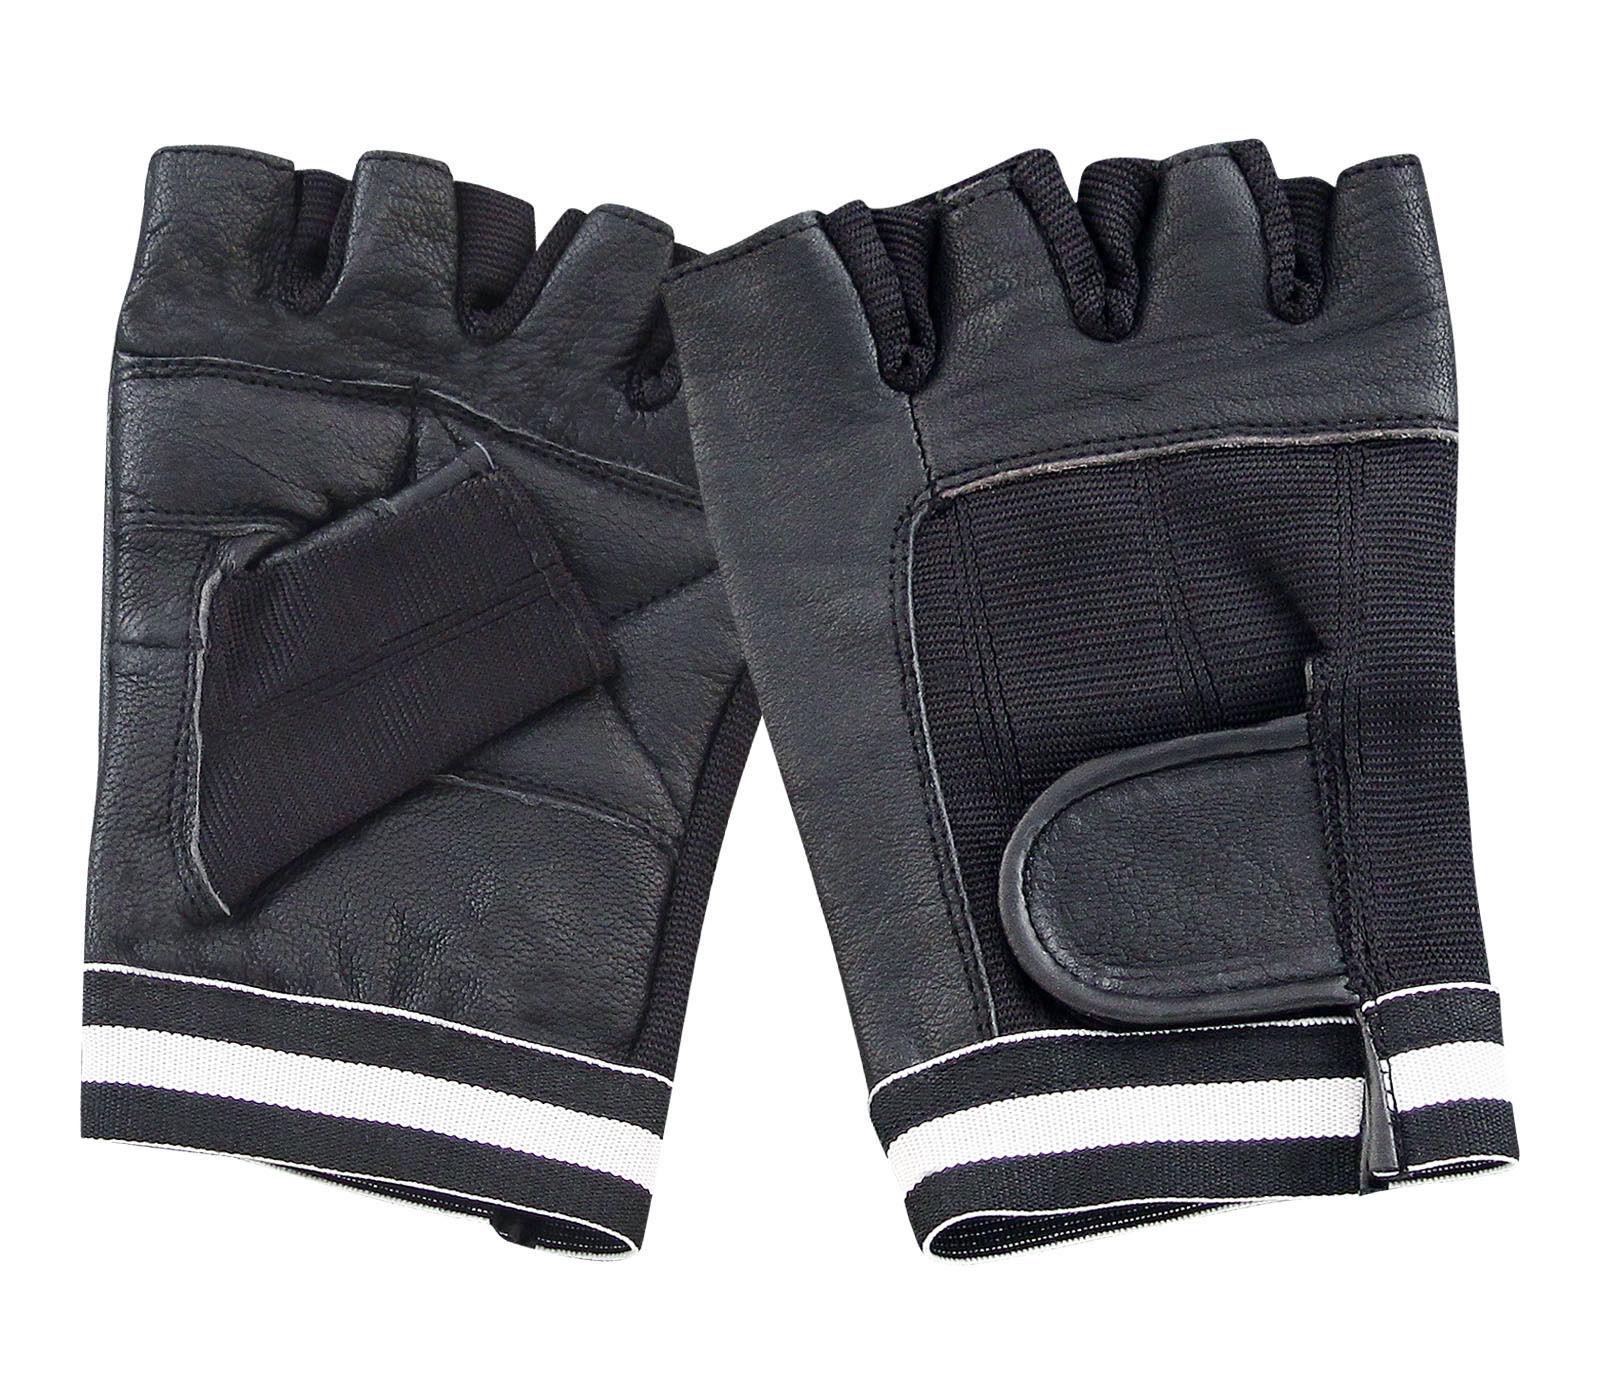 Dam Leather Weight Lifting Gym Gloves Real Leather Women S: LEATHER FINGERLESS GLOVES BIKE DRIVING CYCLING WHEELCHAIR